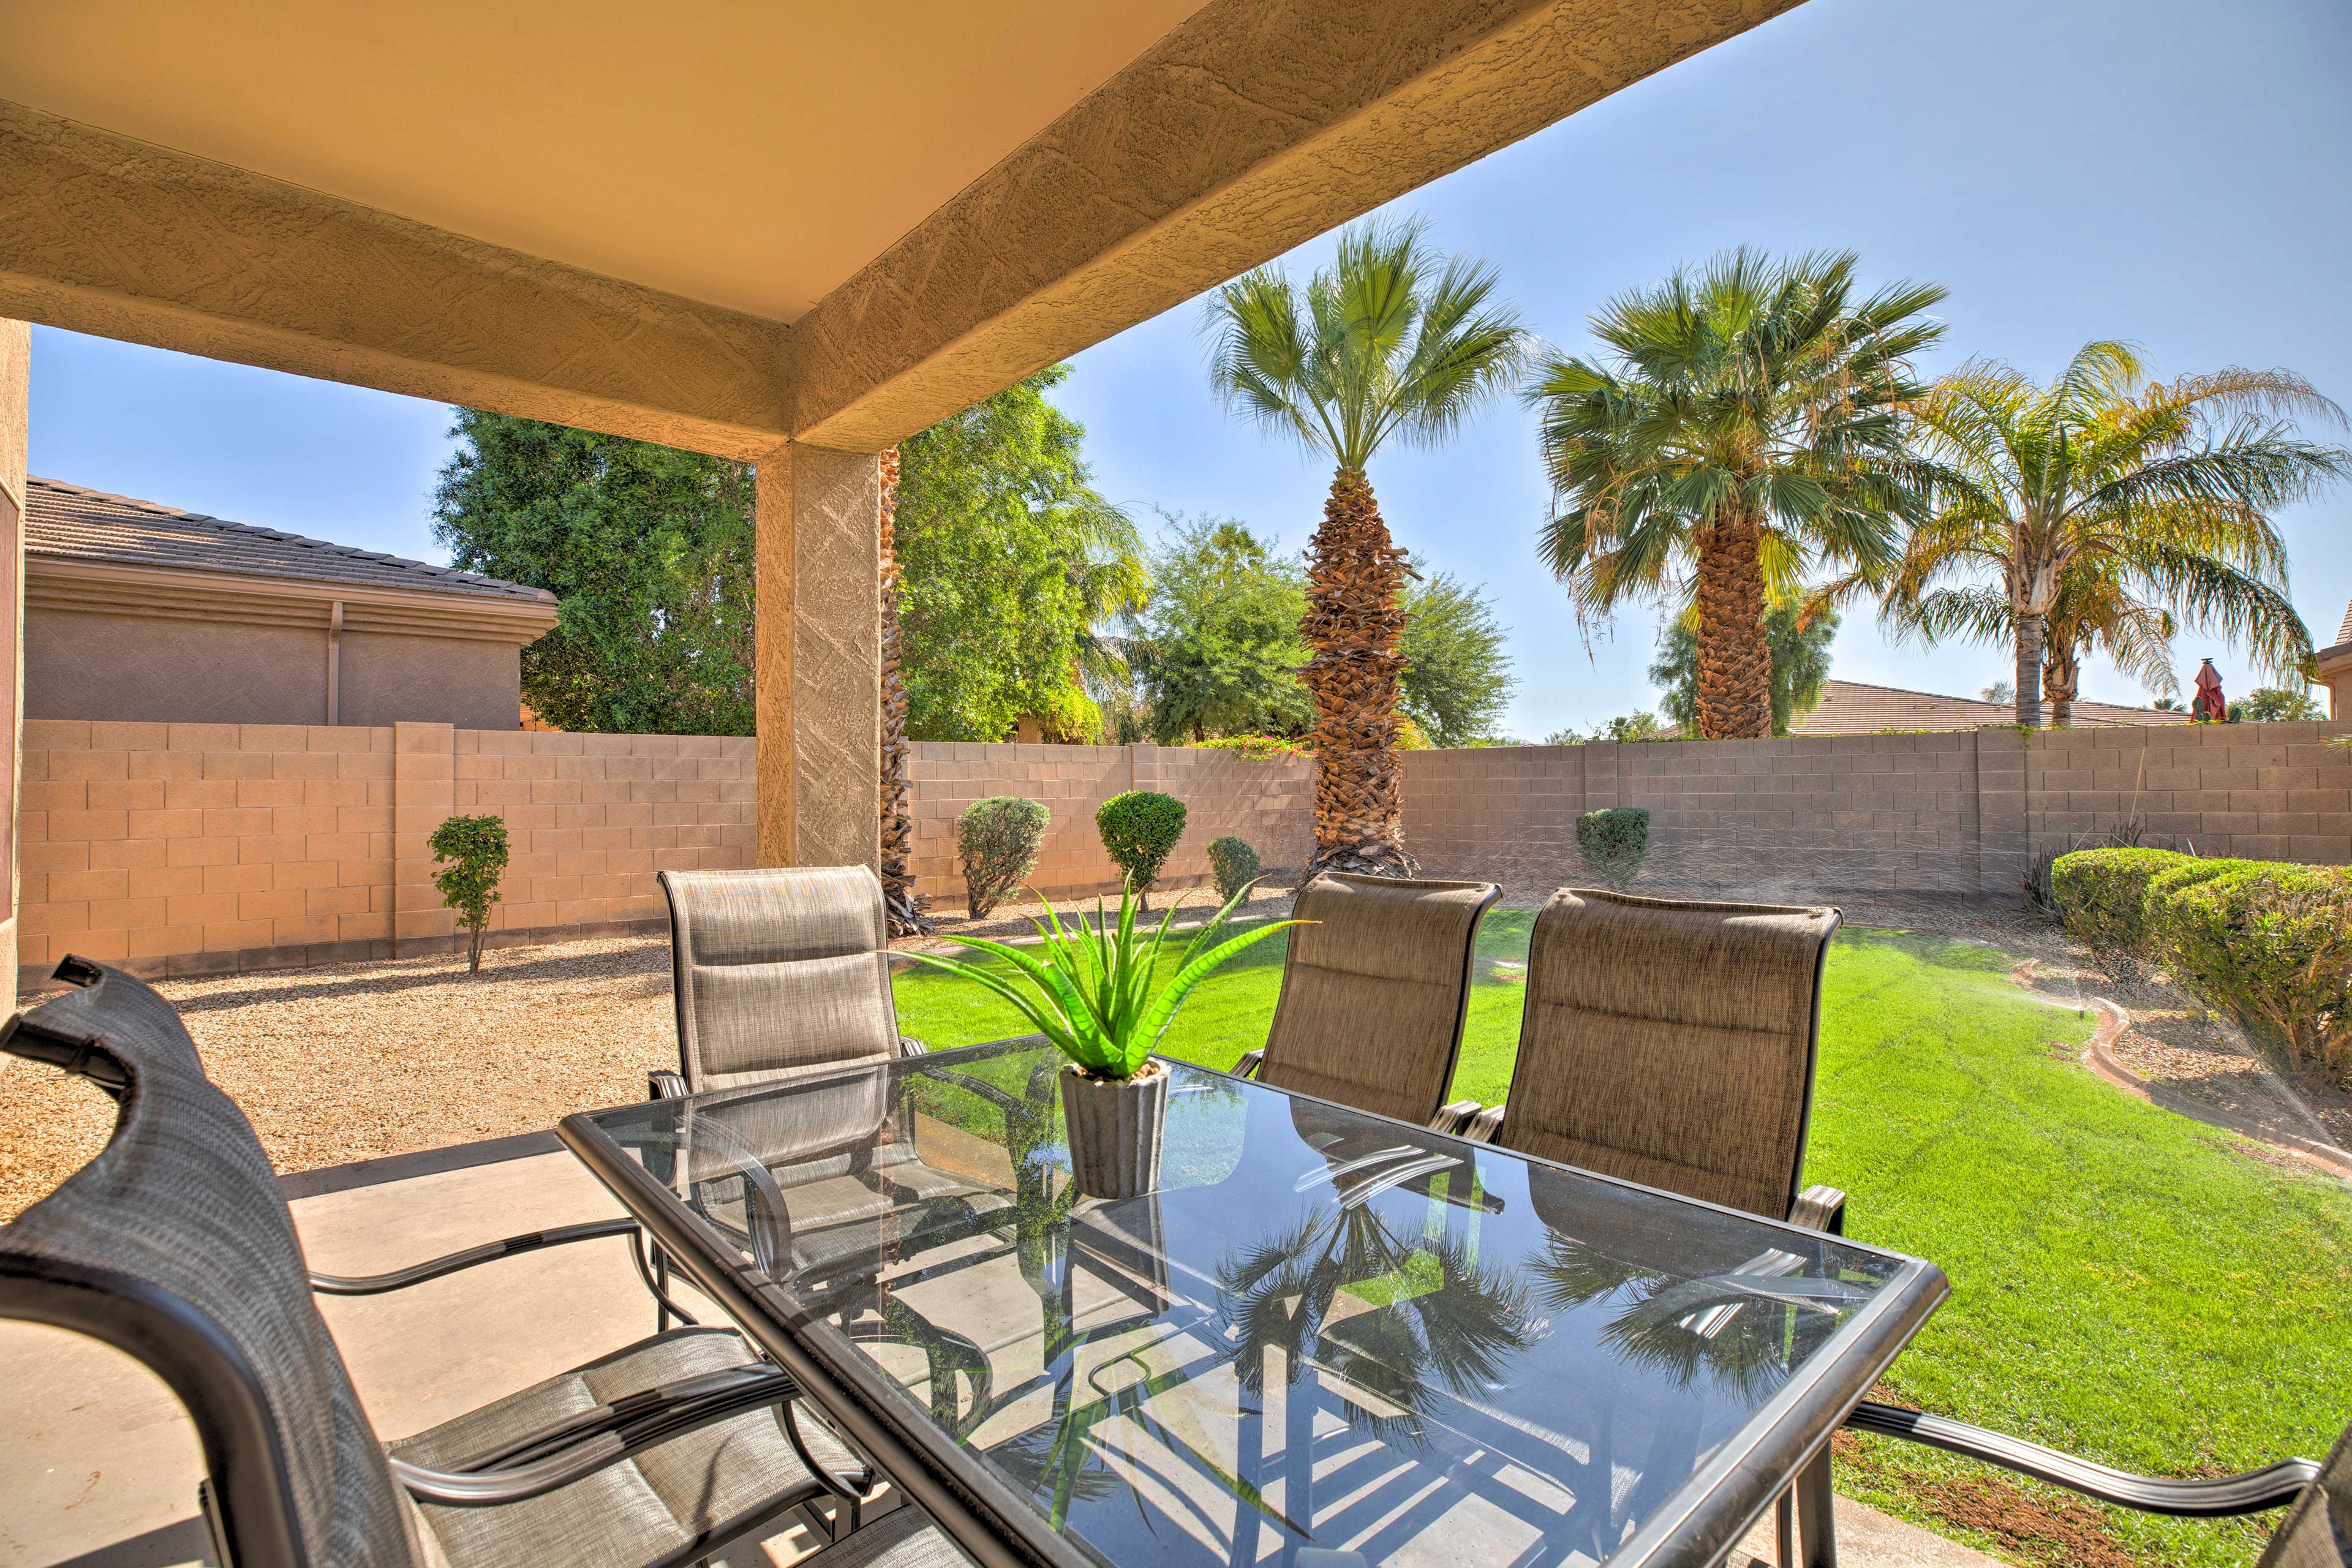 Trade the snow for year-round sunshine, golf, and relaxation in Arizona!